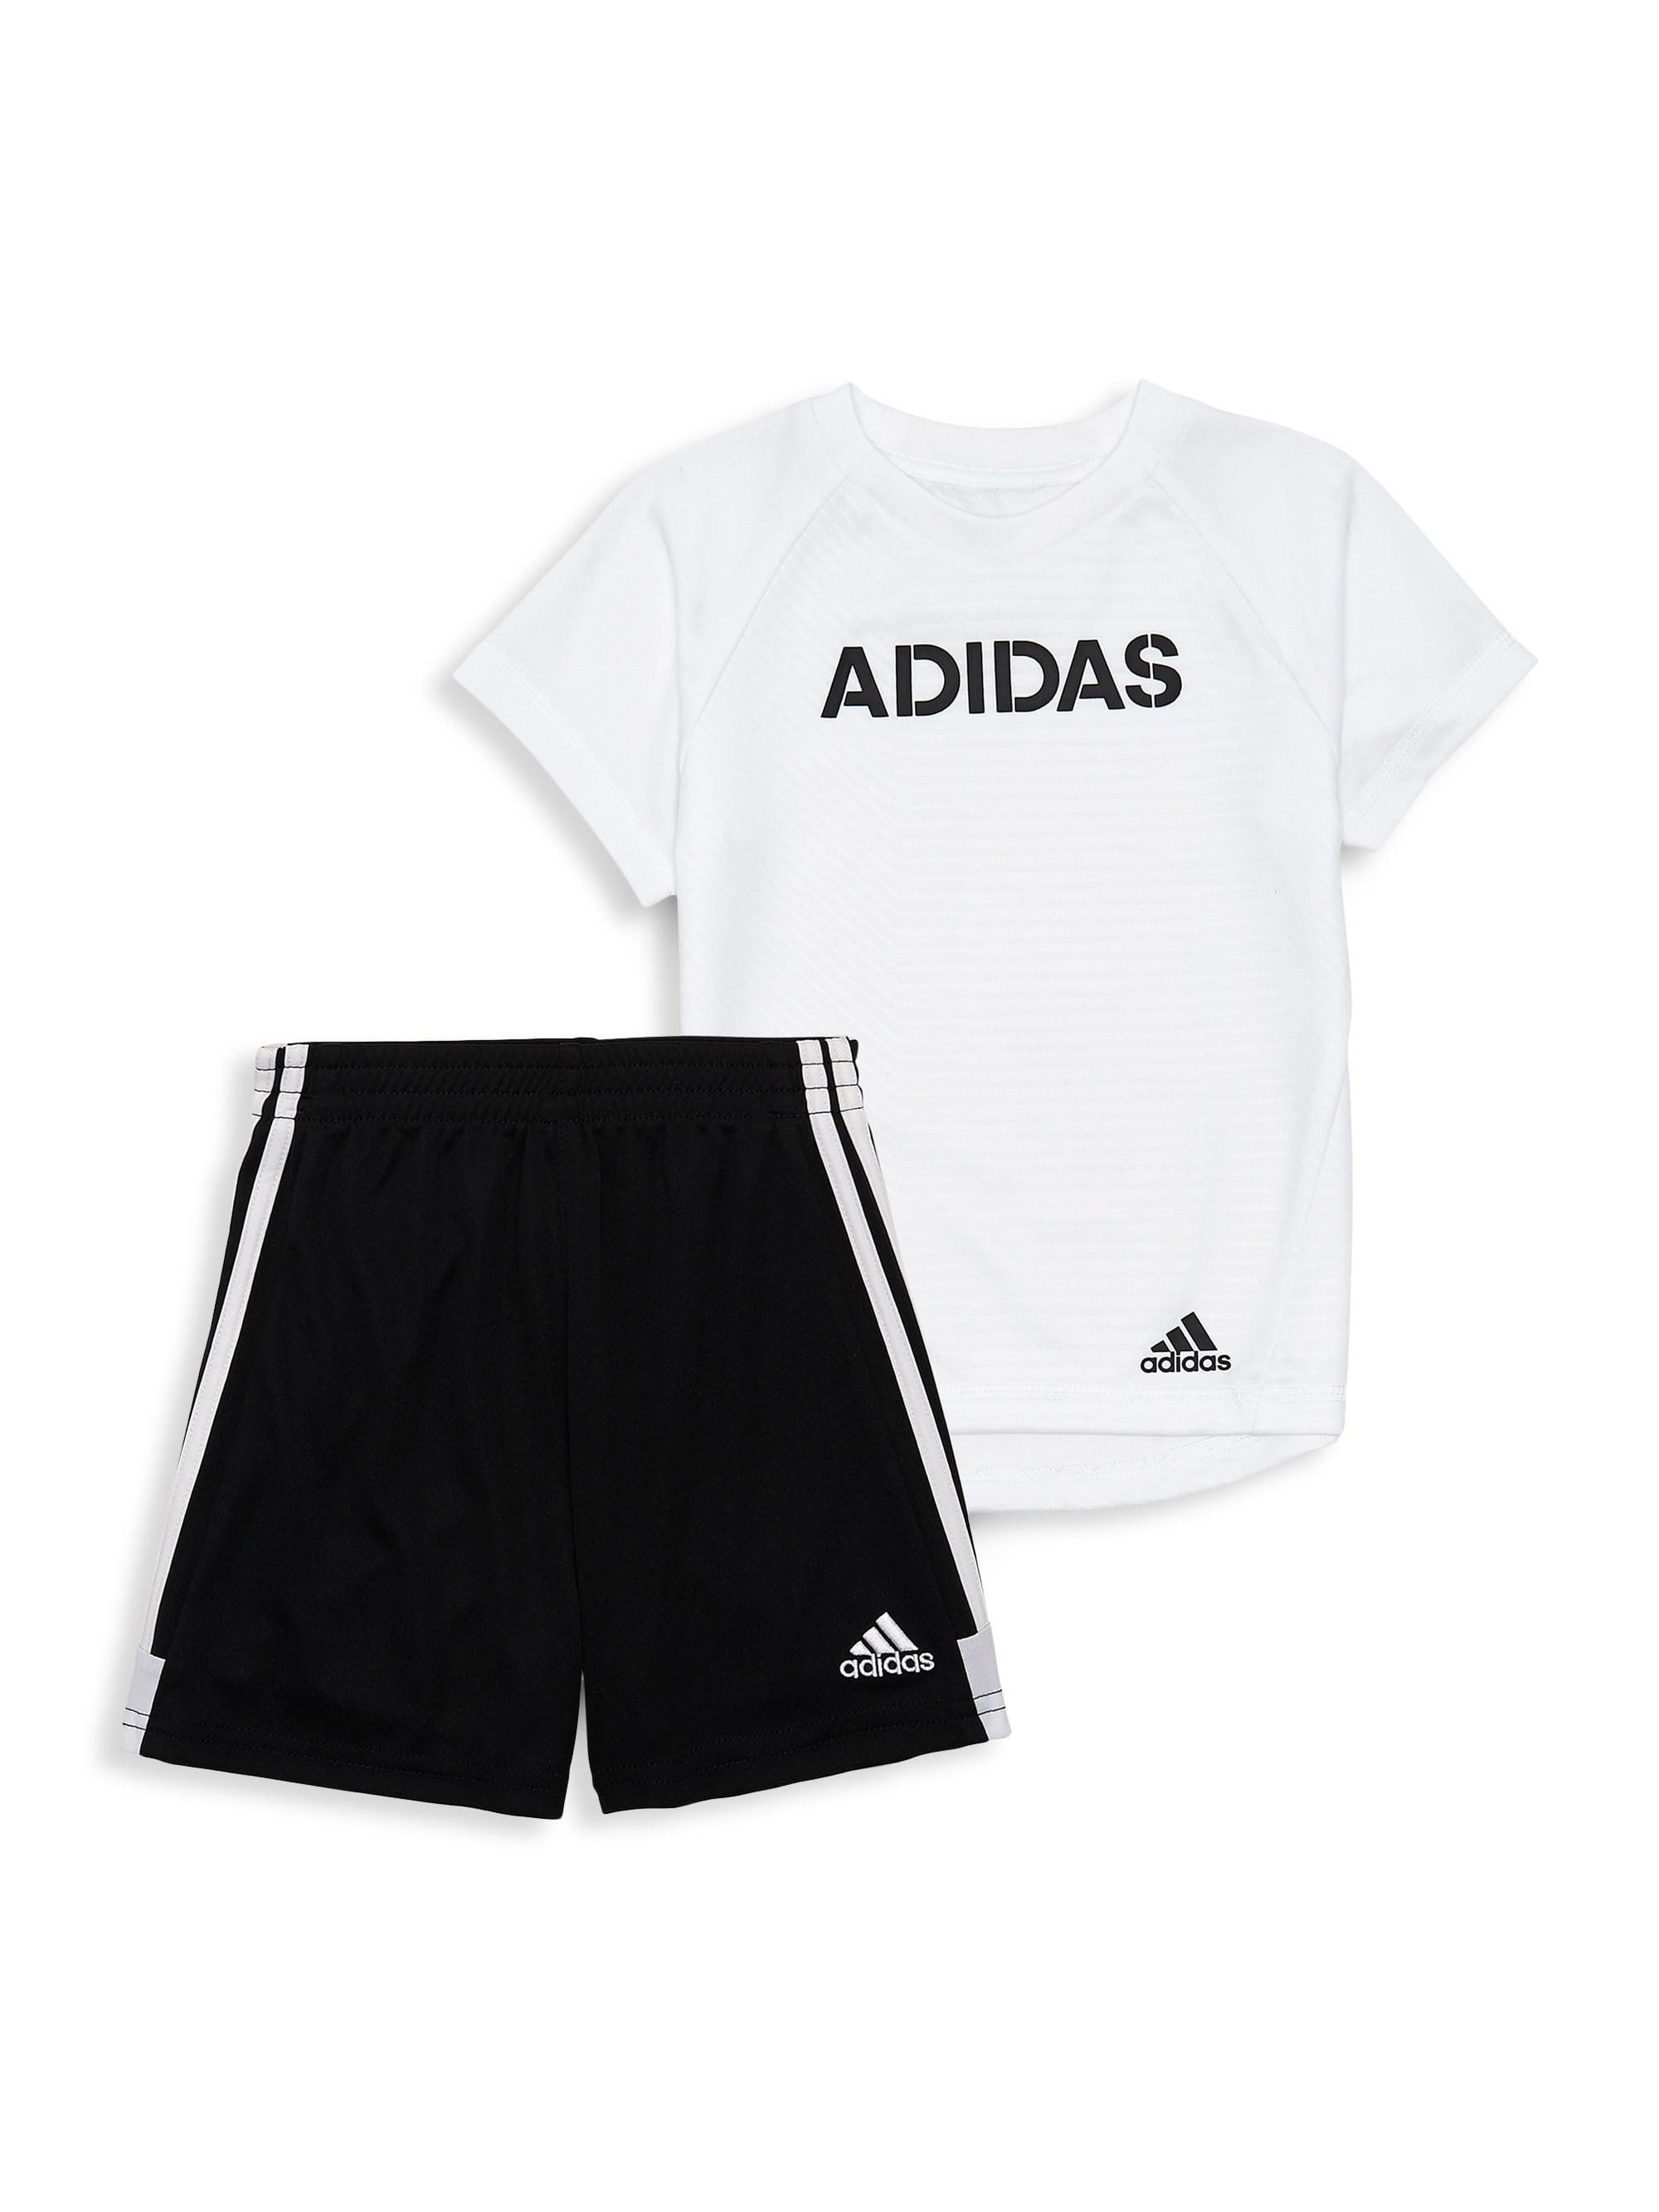 8e34d2883 adidas Baby Boy's Two-piece Logo T-shirt & Shorts Set in White for ...